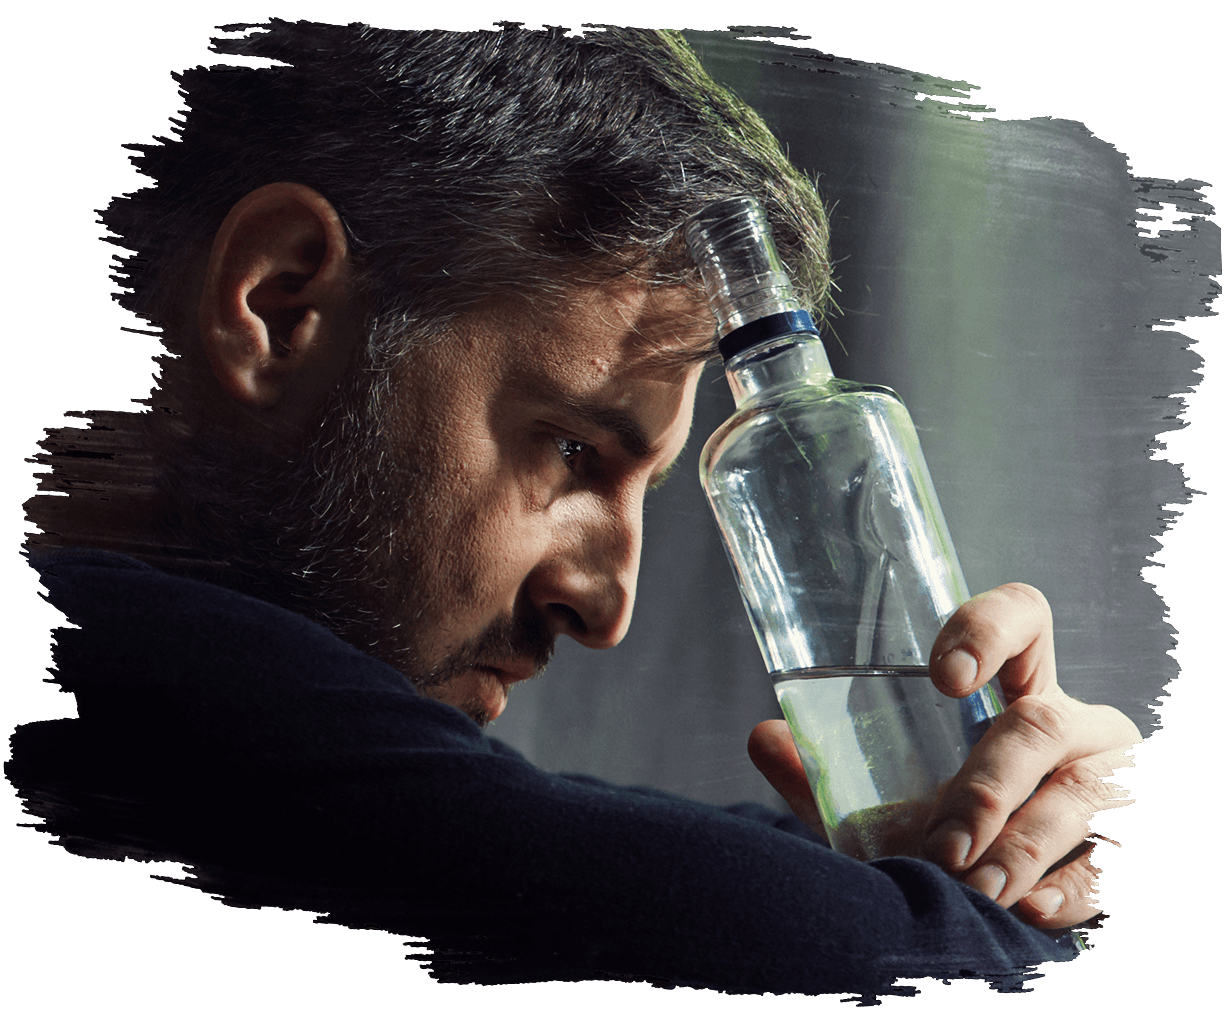 This is an image of a man holding a bottle of spirits thinking about his situation